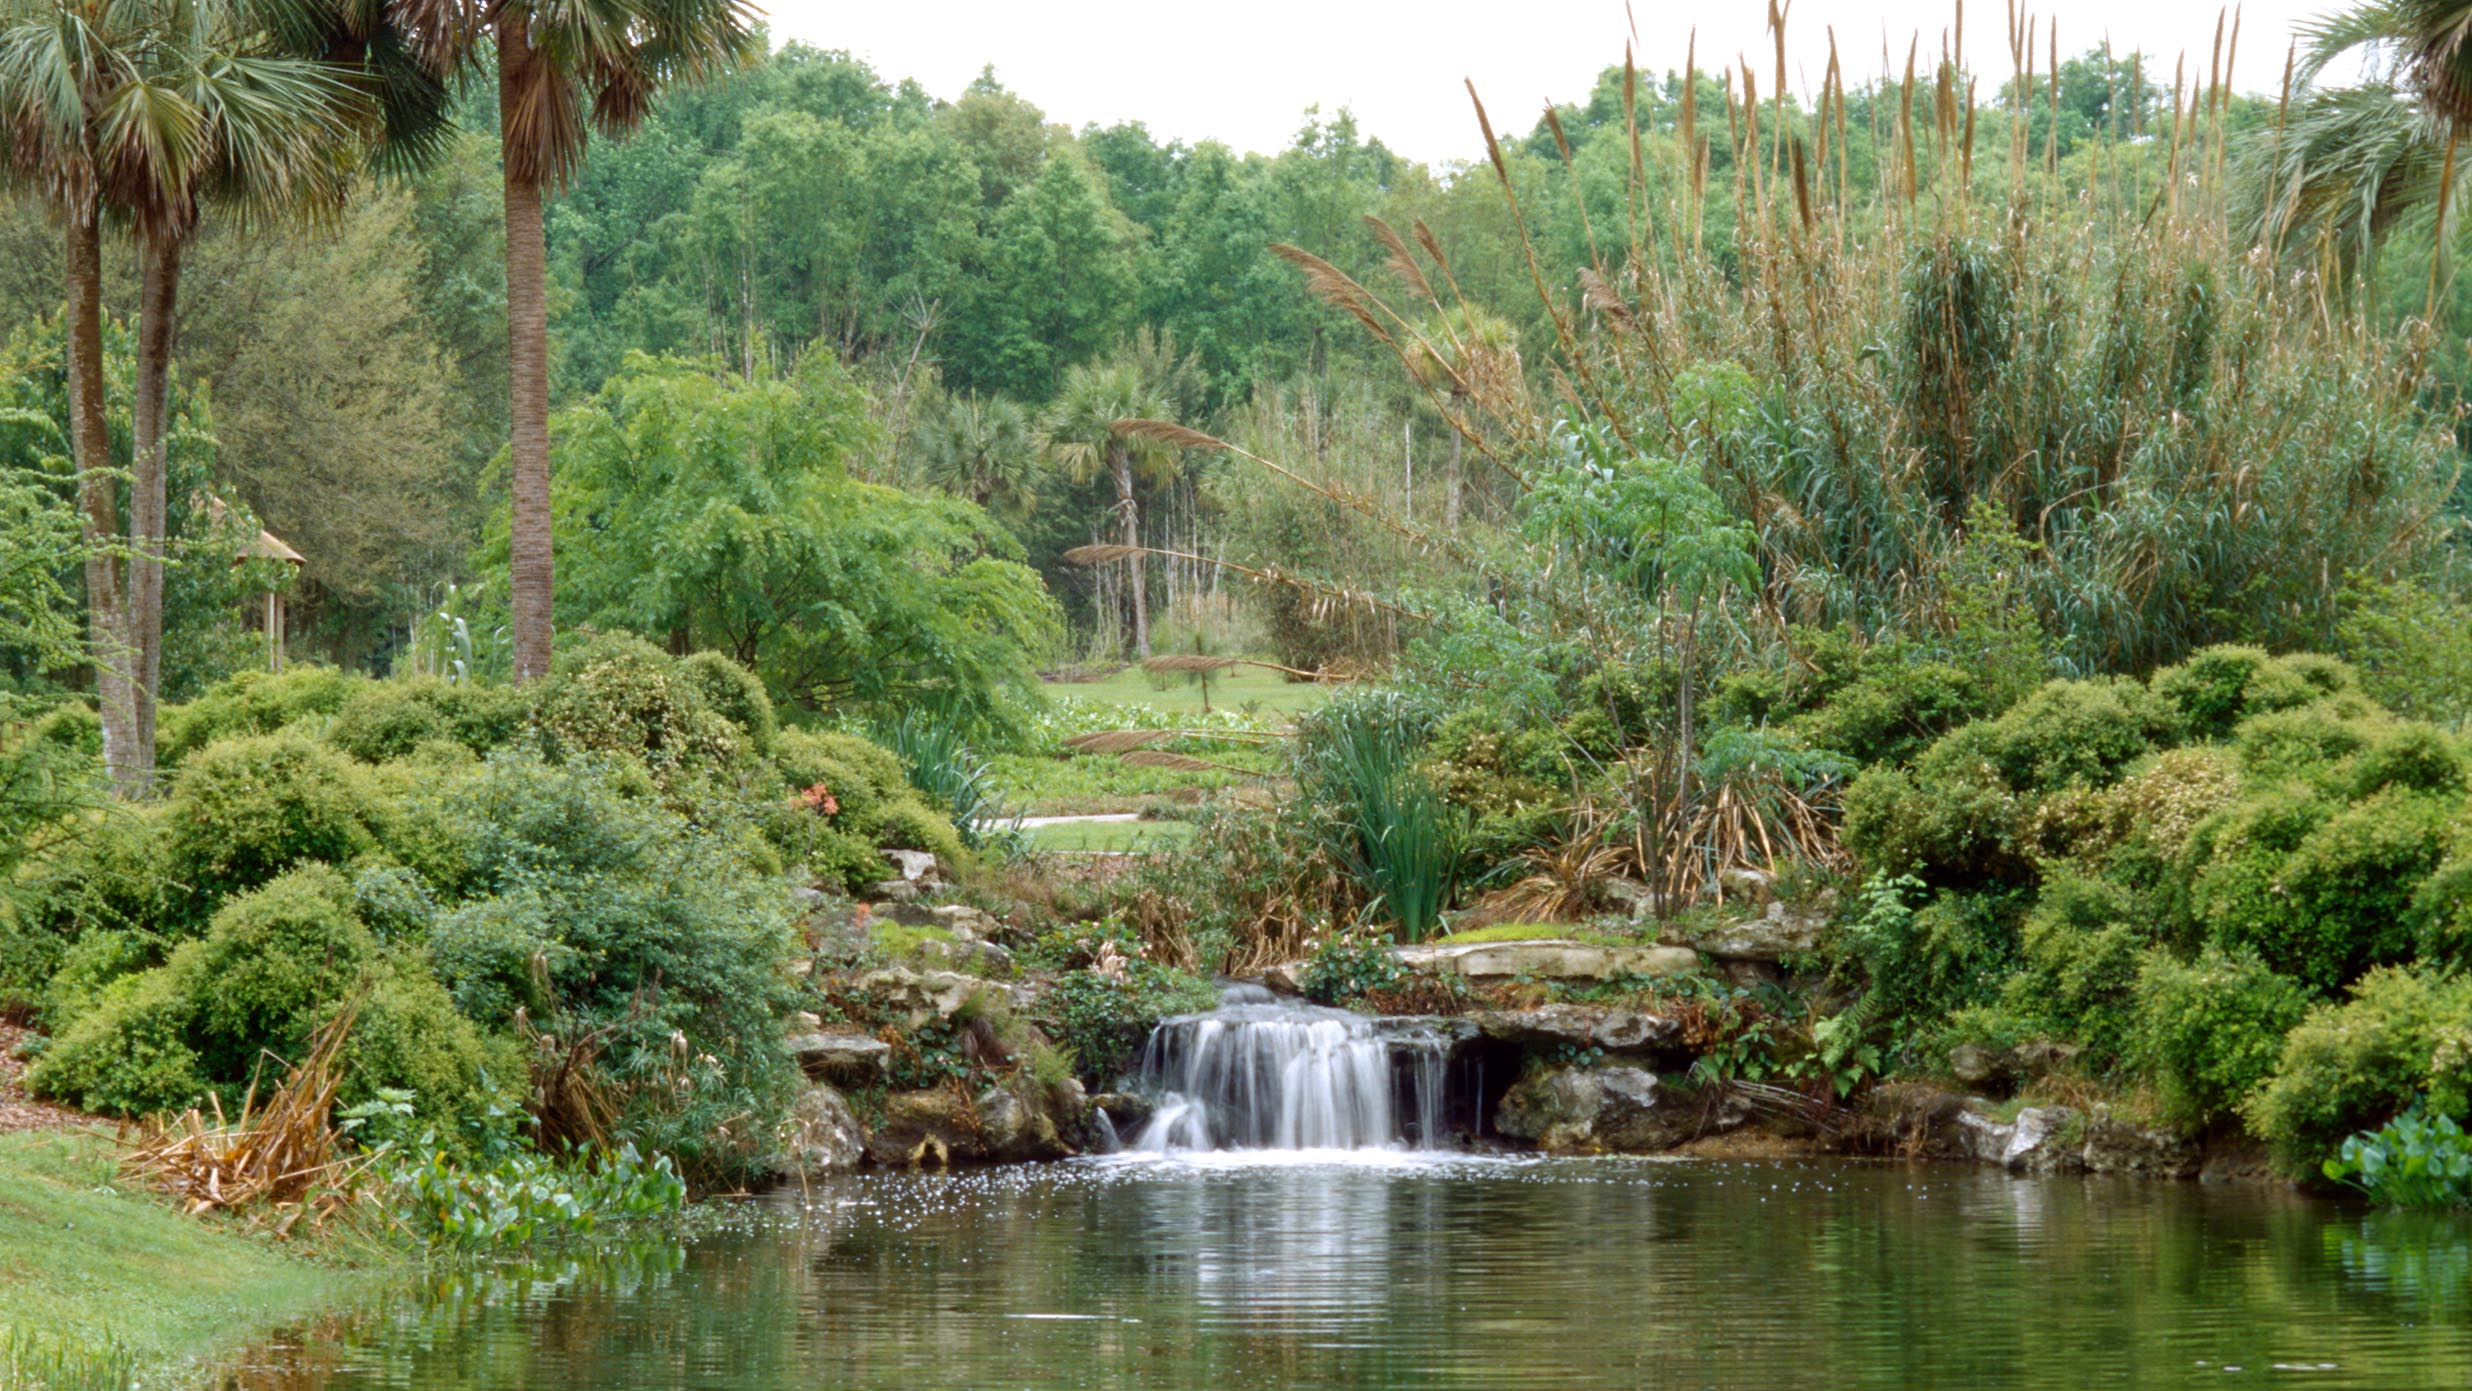 Scenic landscaping with a waterfall